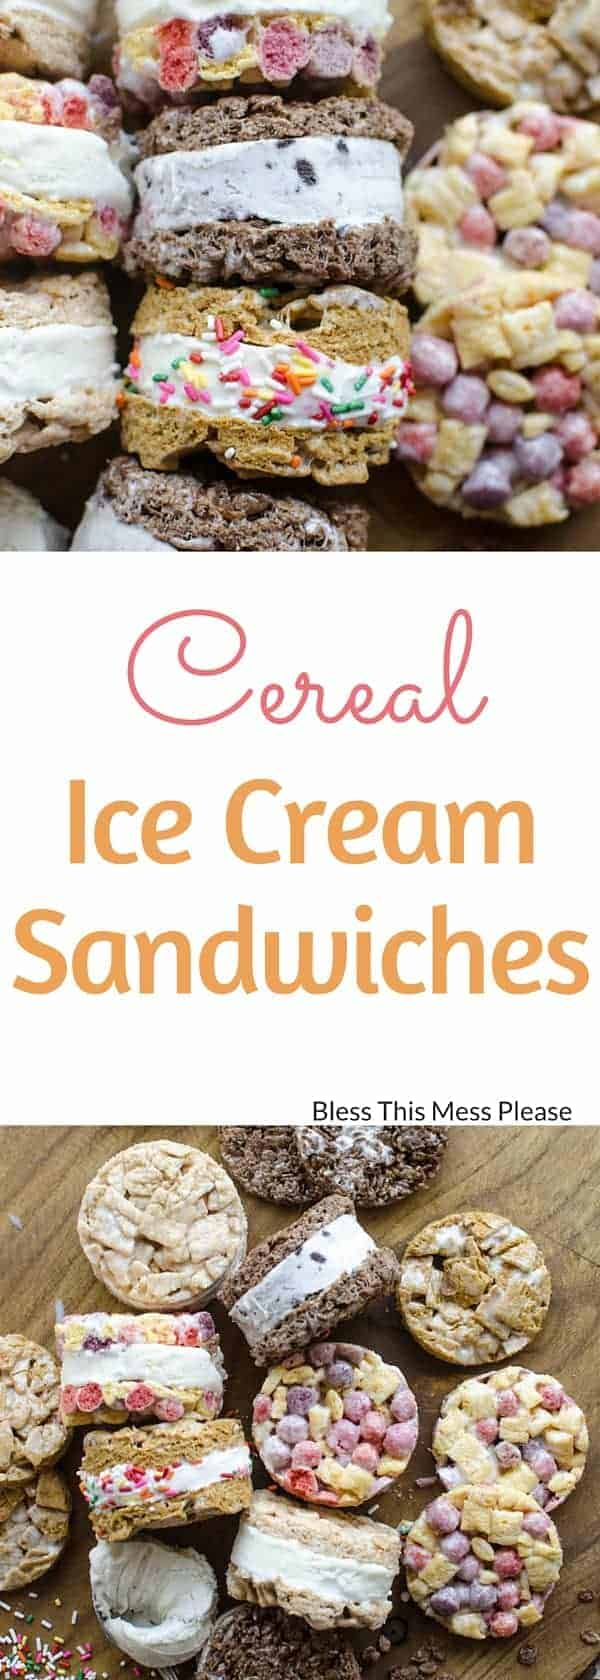 Cereal Ice Cream Sandwiches